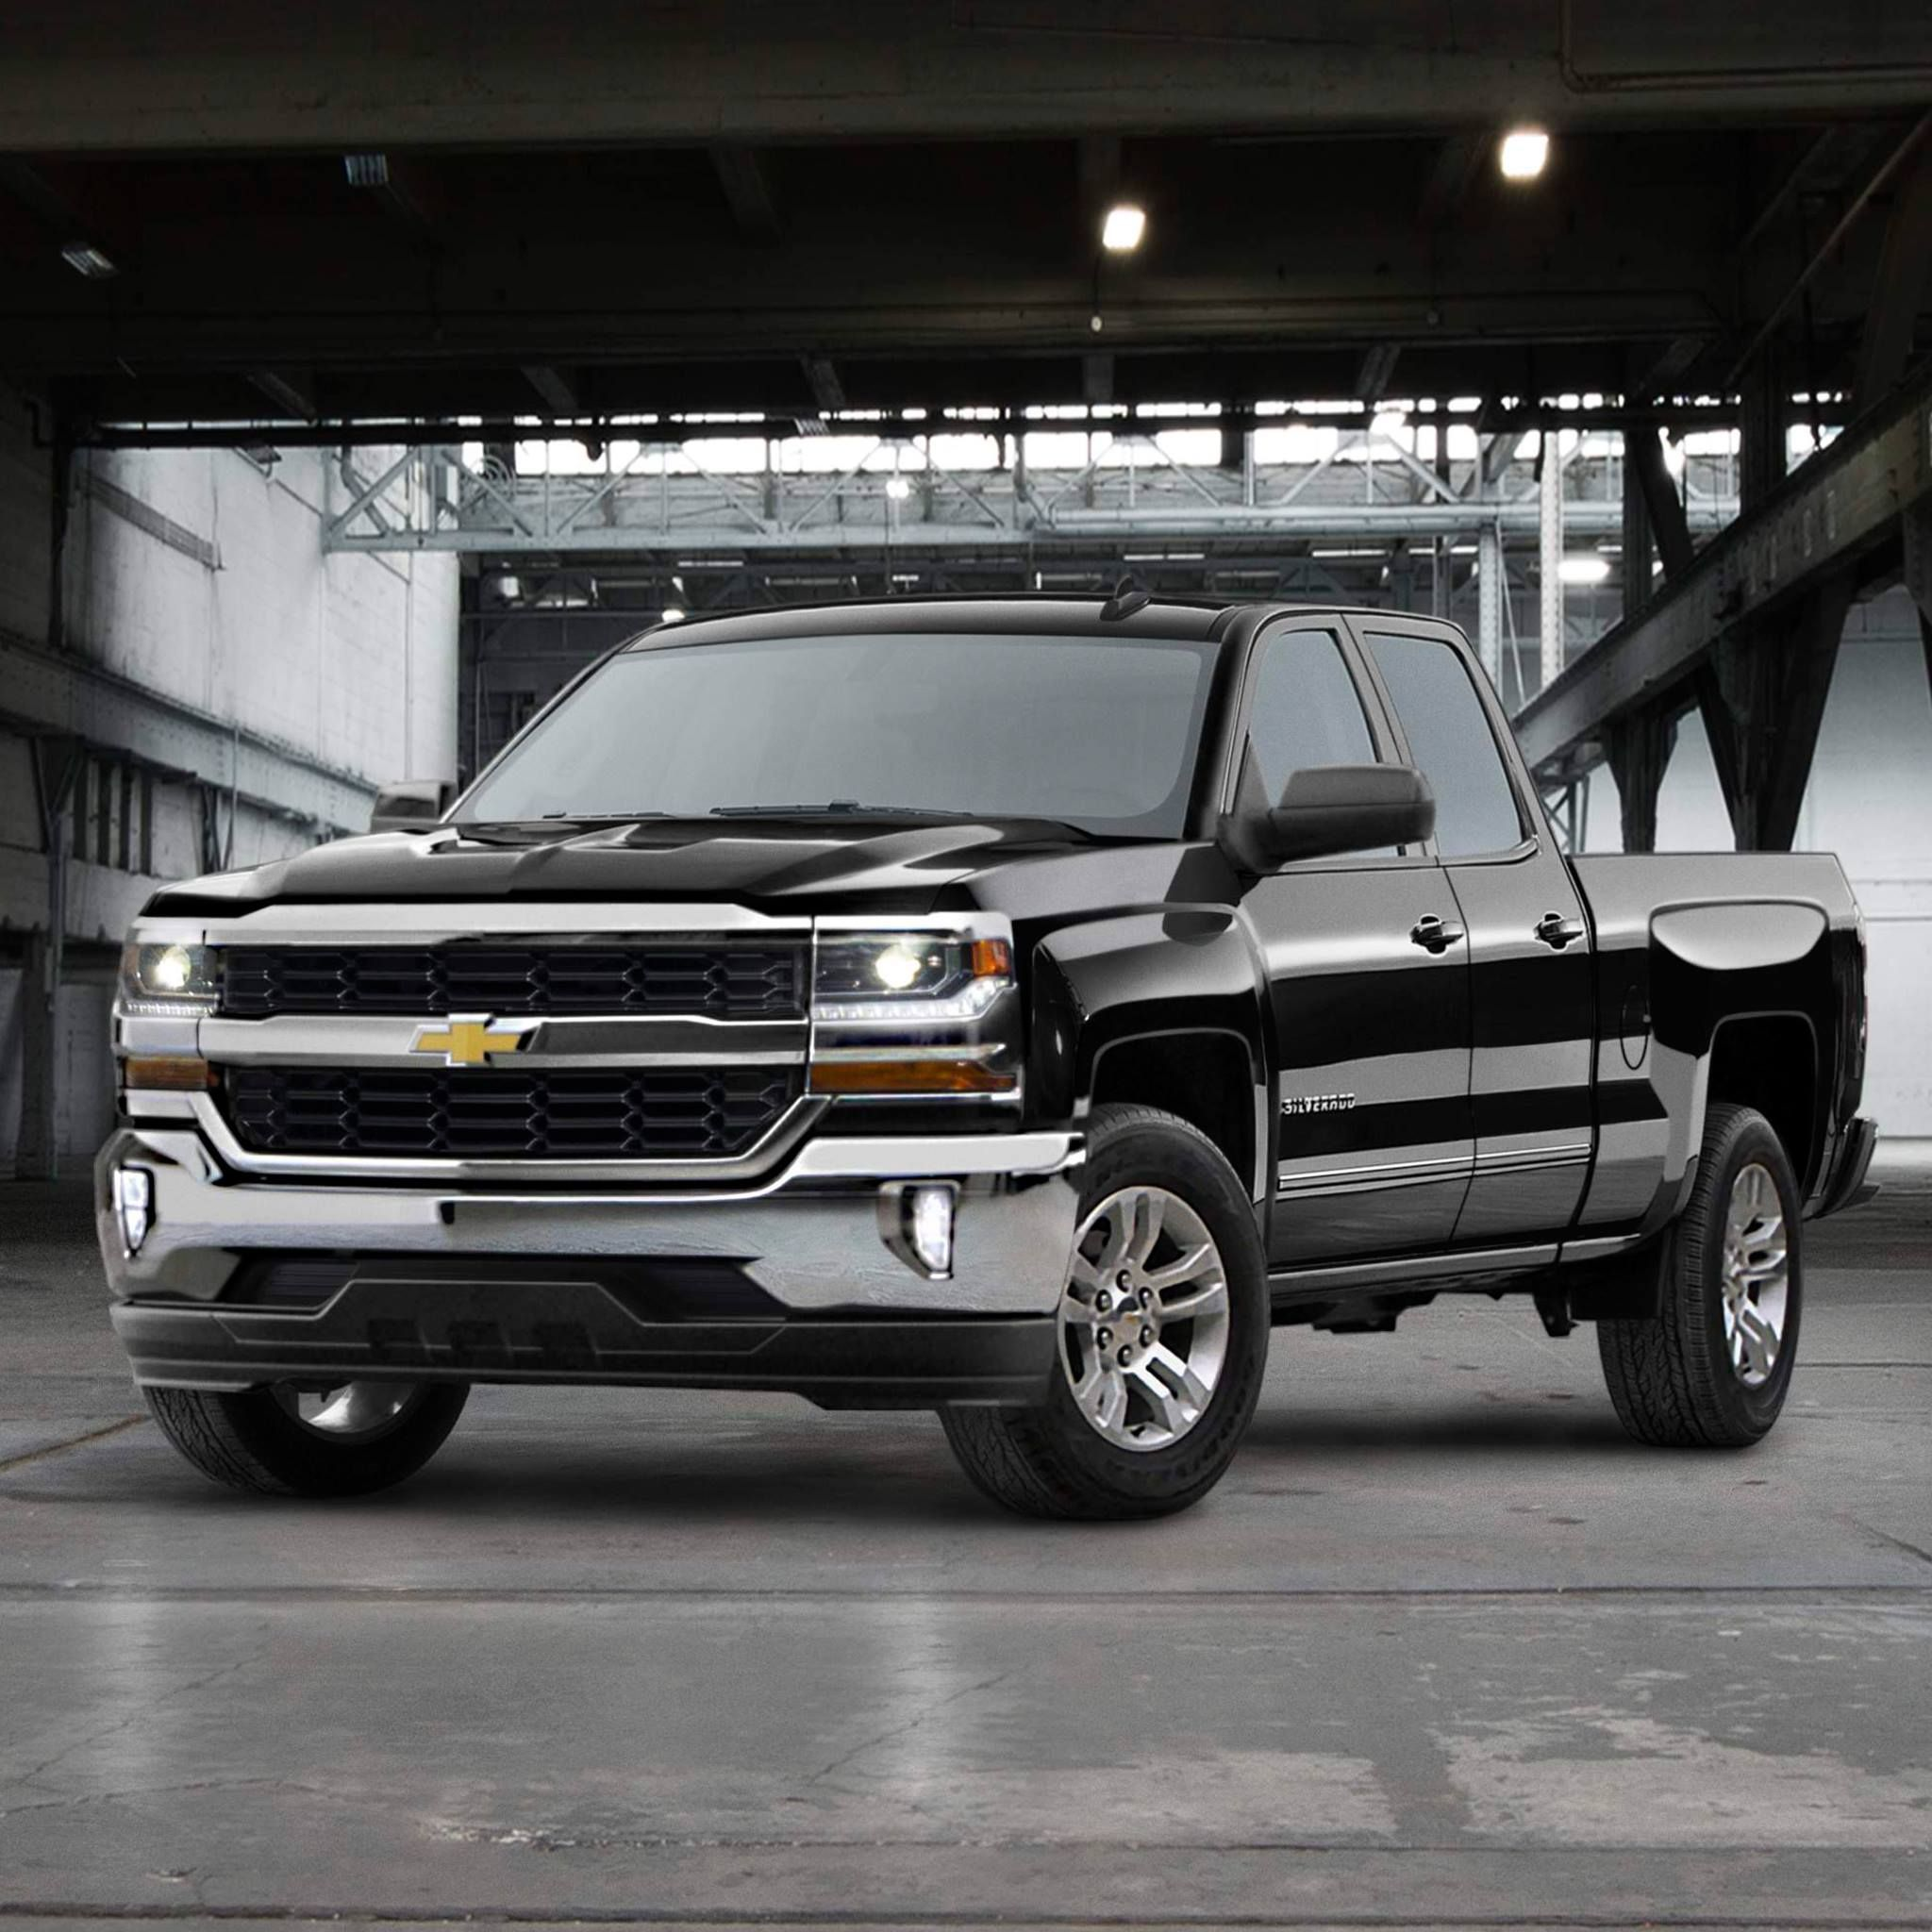 roadshow rows of family traverse chevrolet three fun offers pictures